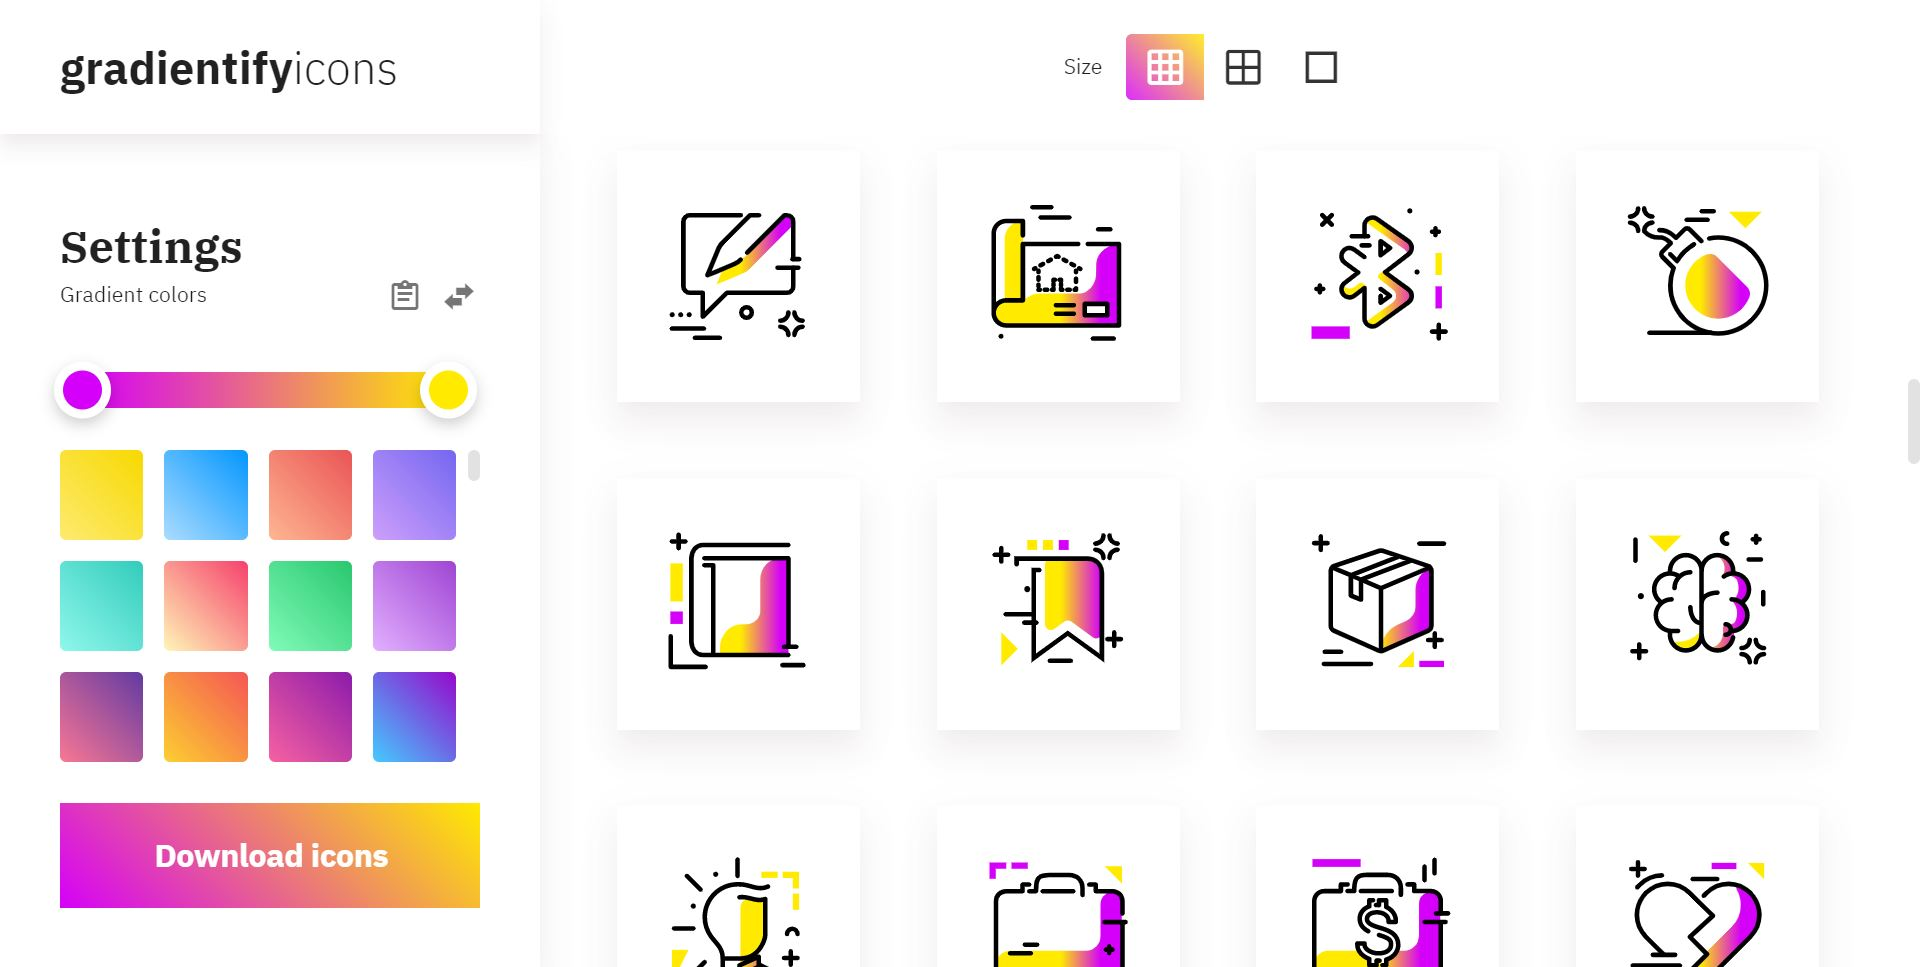 Gradientify SVG Icons - The definitive pack for gradient lovers